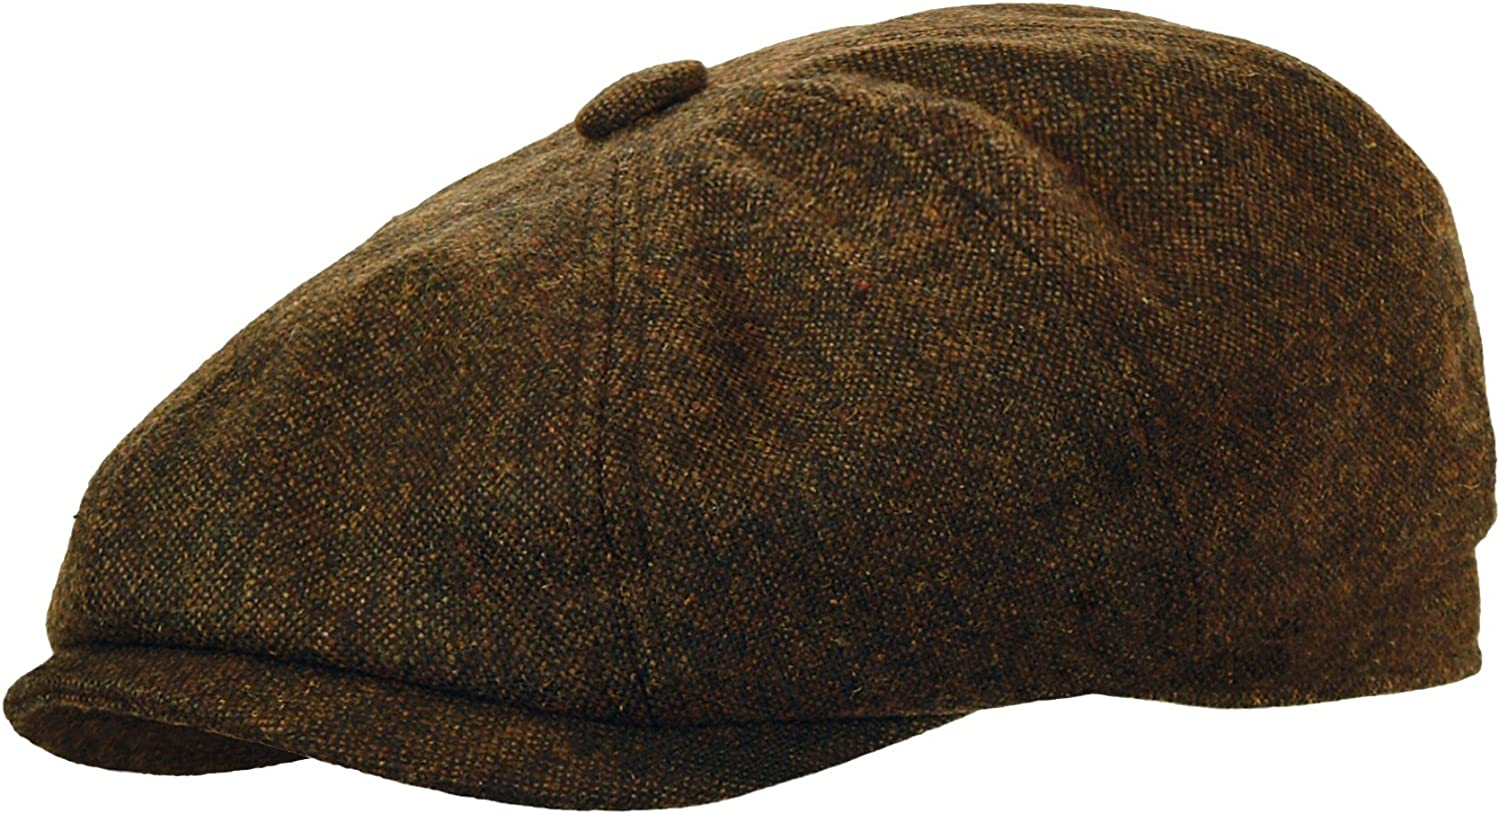 Rooster Wool Tweed Newsboy Gatsby Cap Ivy Golf Hat Driving Cabbie